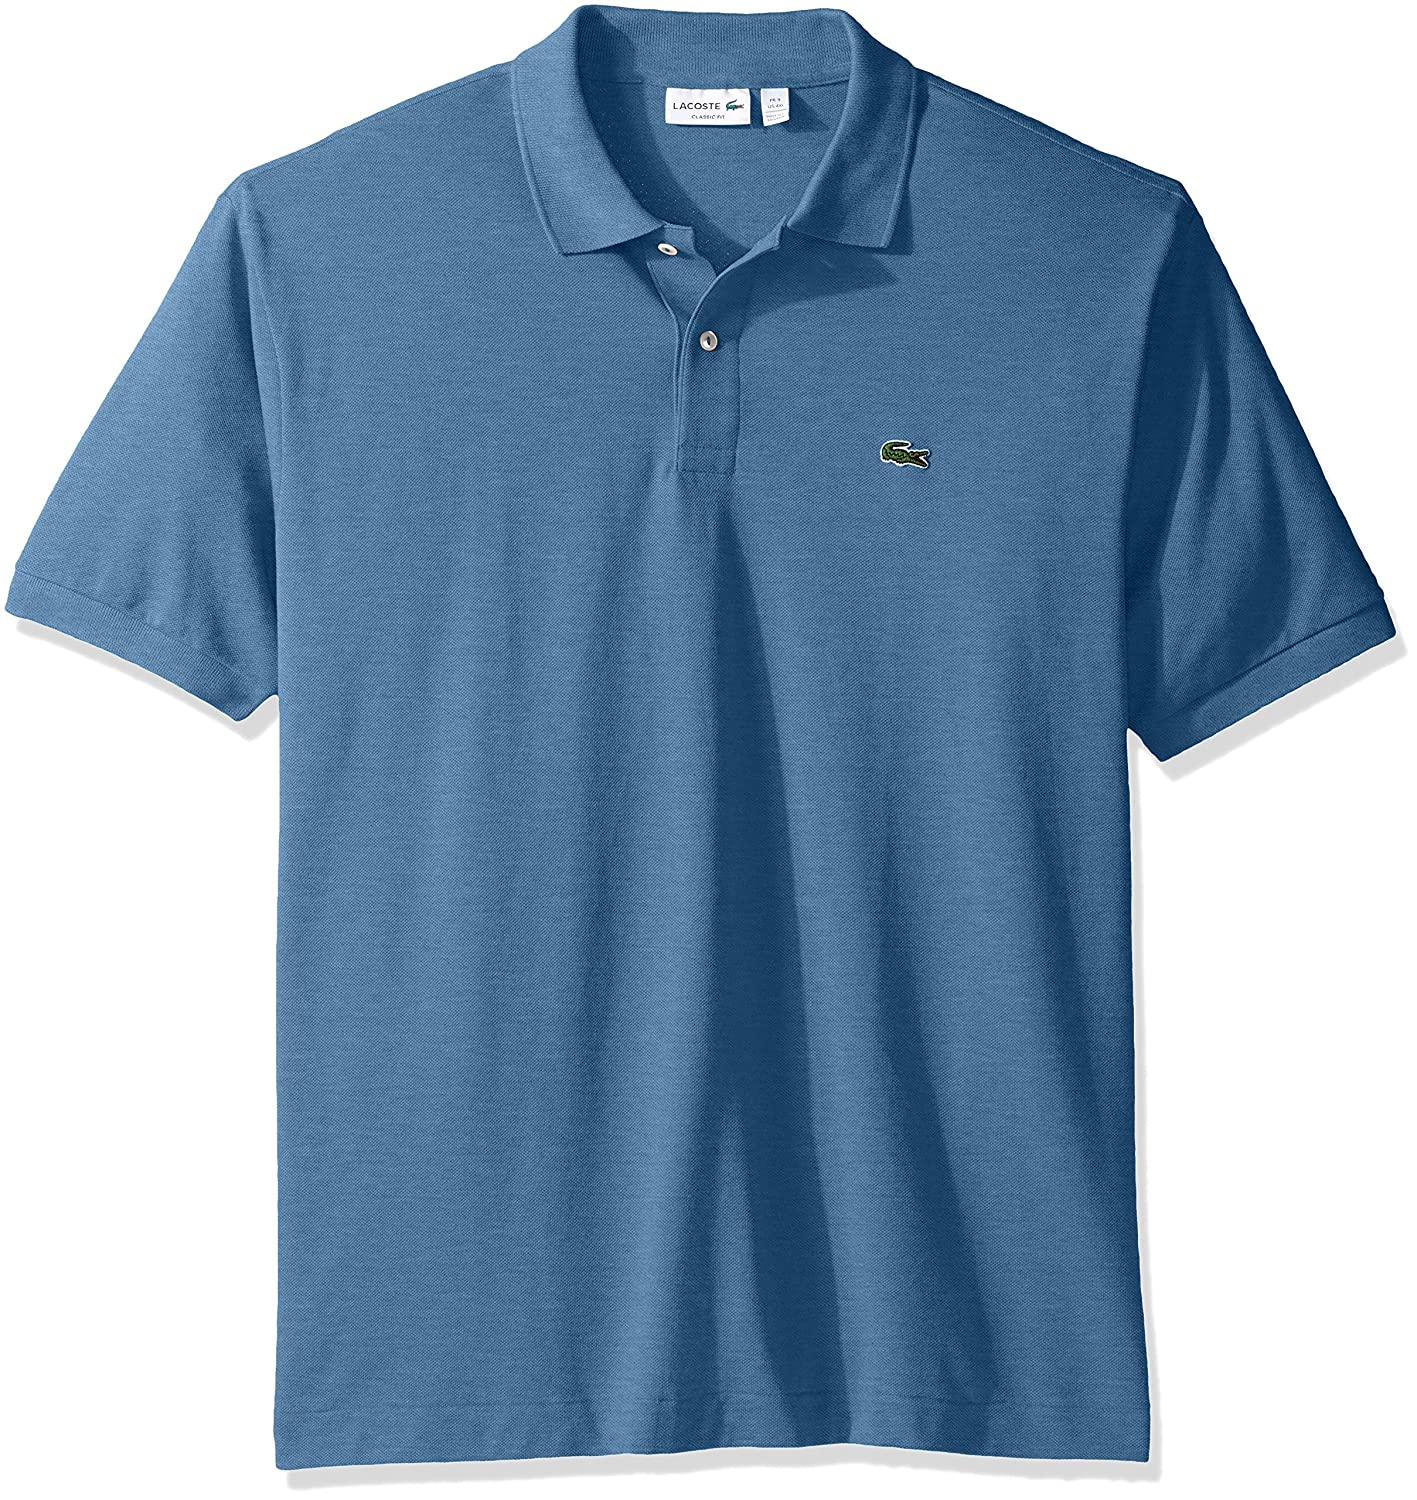 a49b0b5d668ef2 Lacoste Men s Short Sleeve Classic Chine Fabric L.12.64 Original Fit Polo  Shirt at Amazon Men s Clothing store